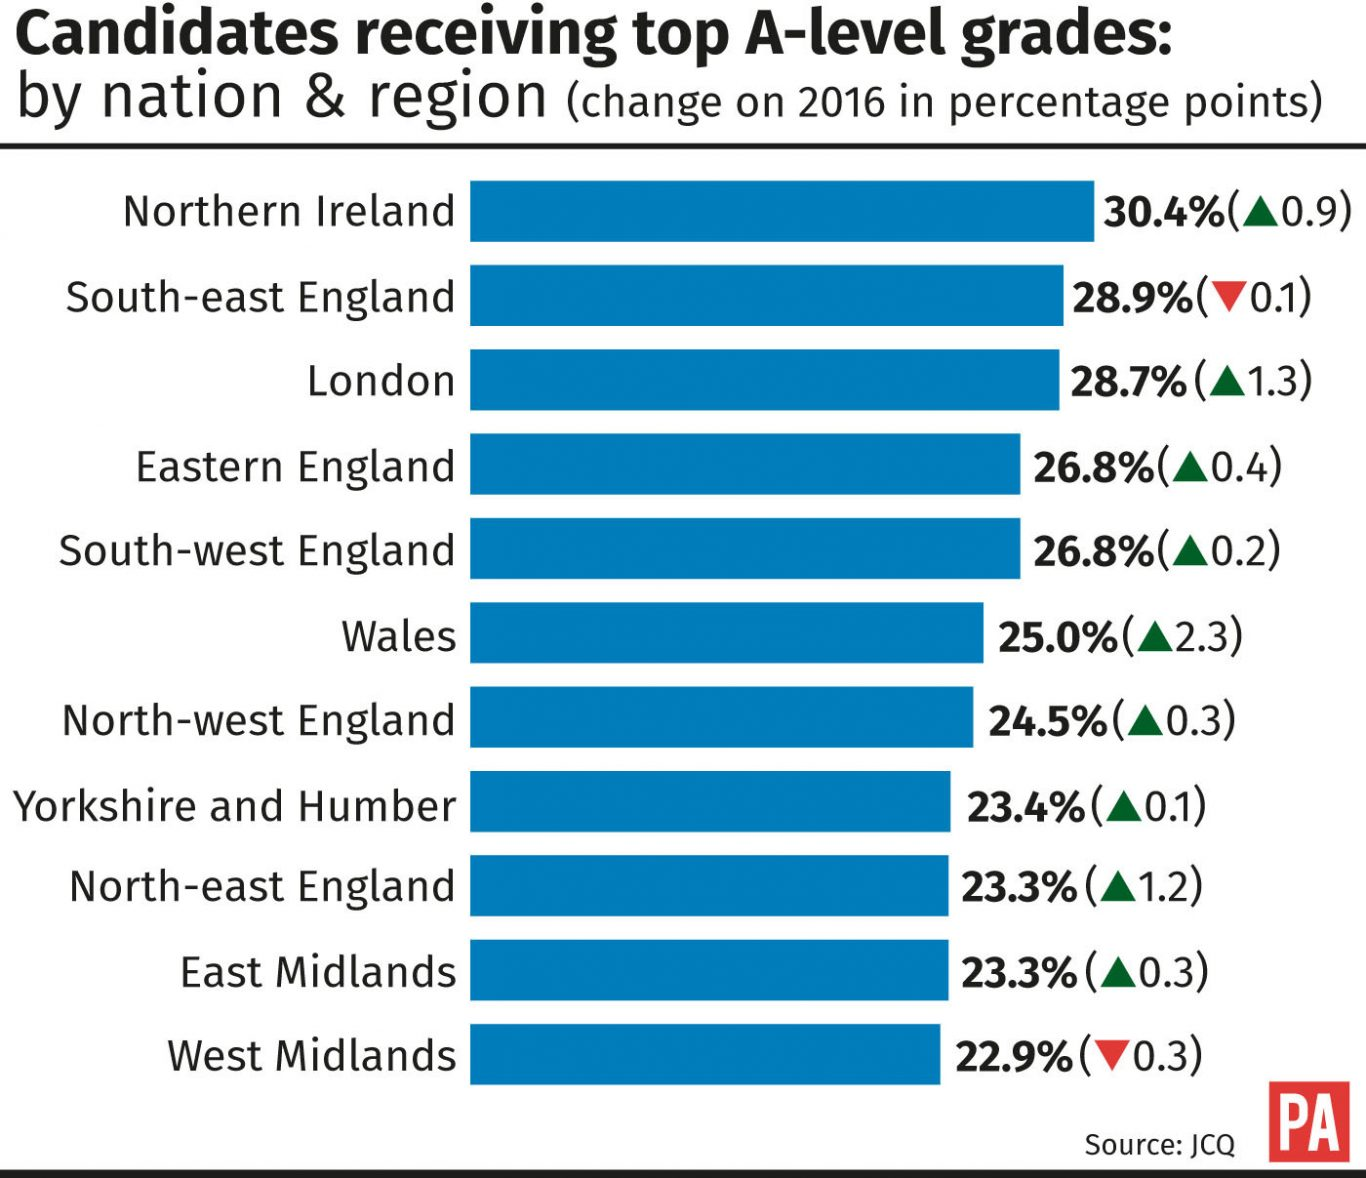 Candidates receiving top A-level grades: by nation and region